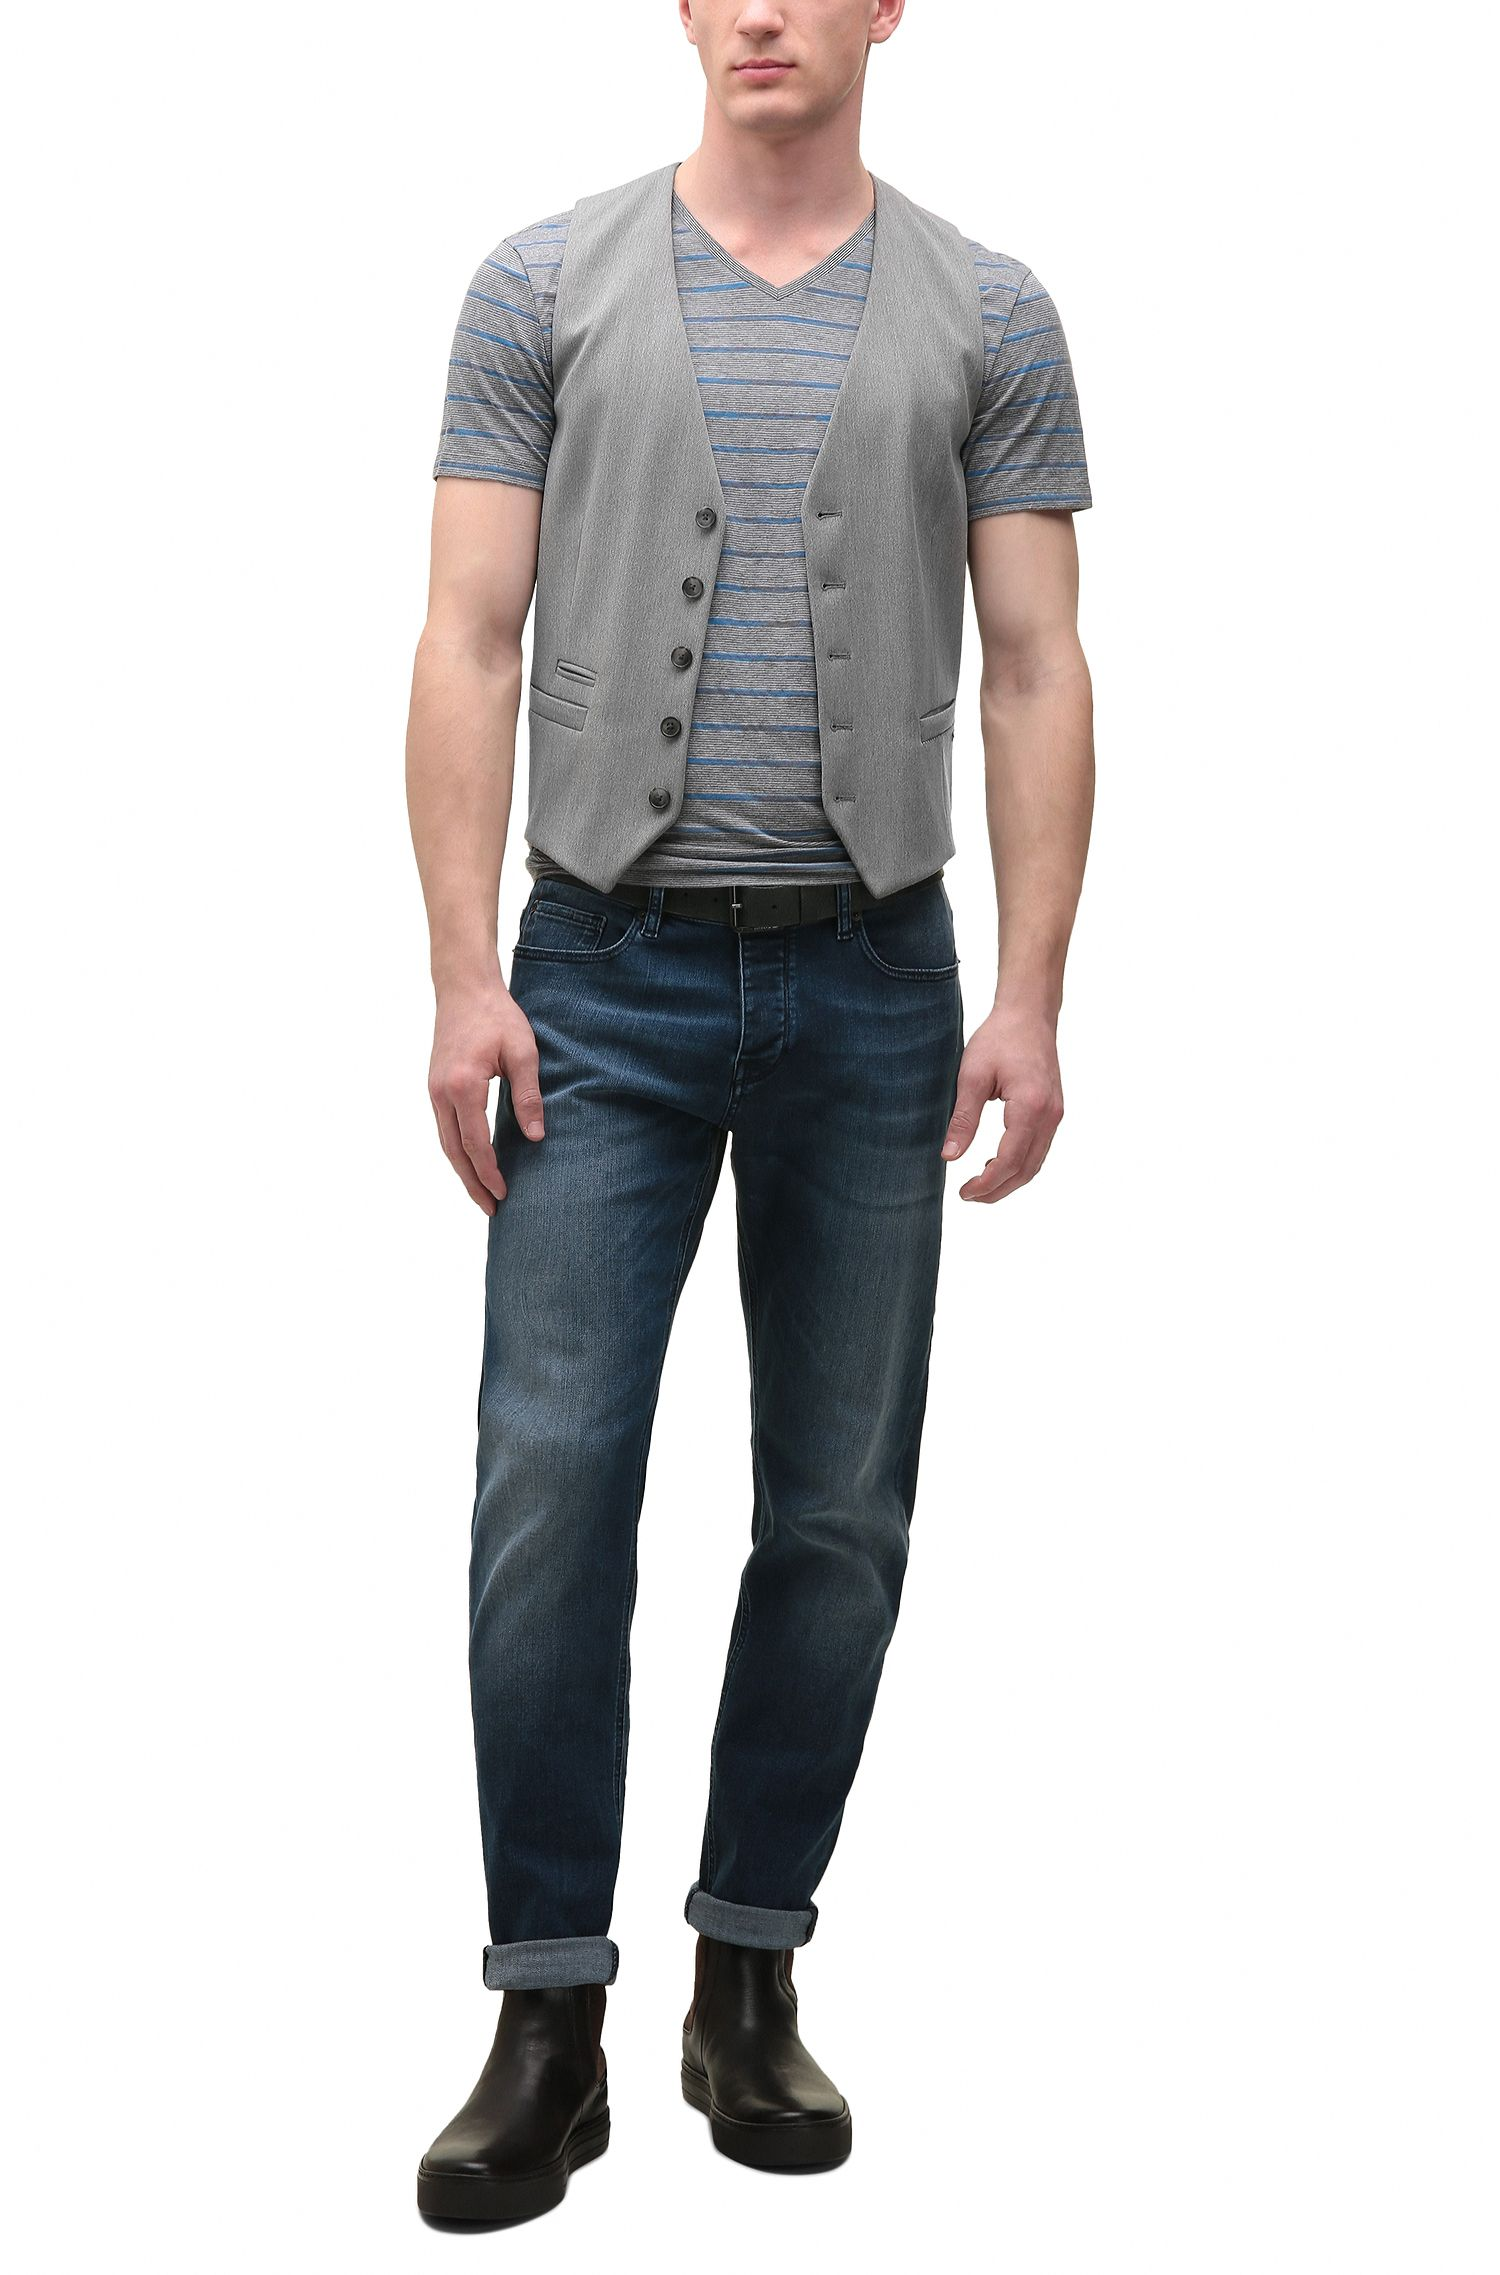 Vaqueros tapered fit en denim superelástico